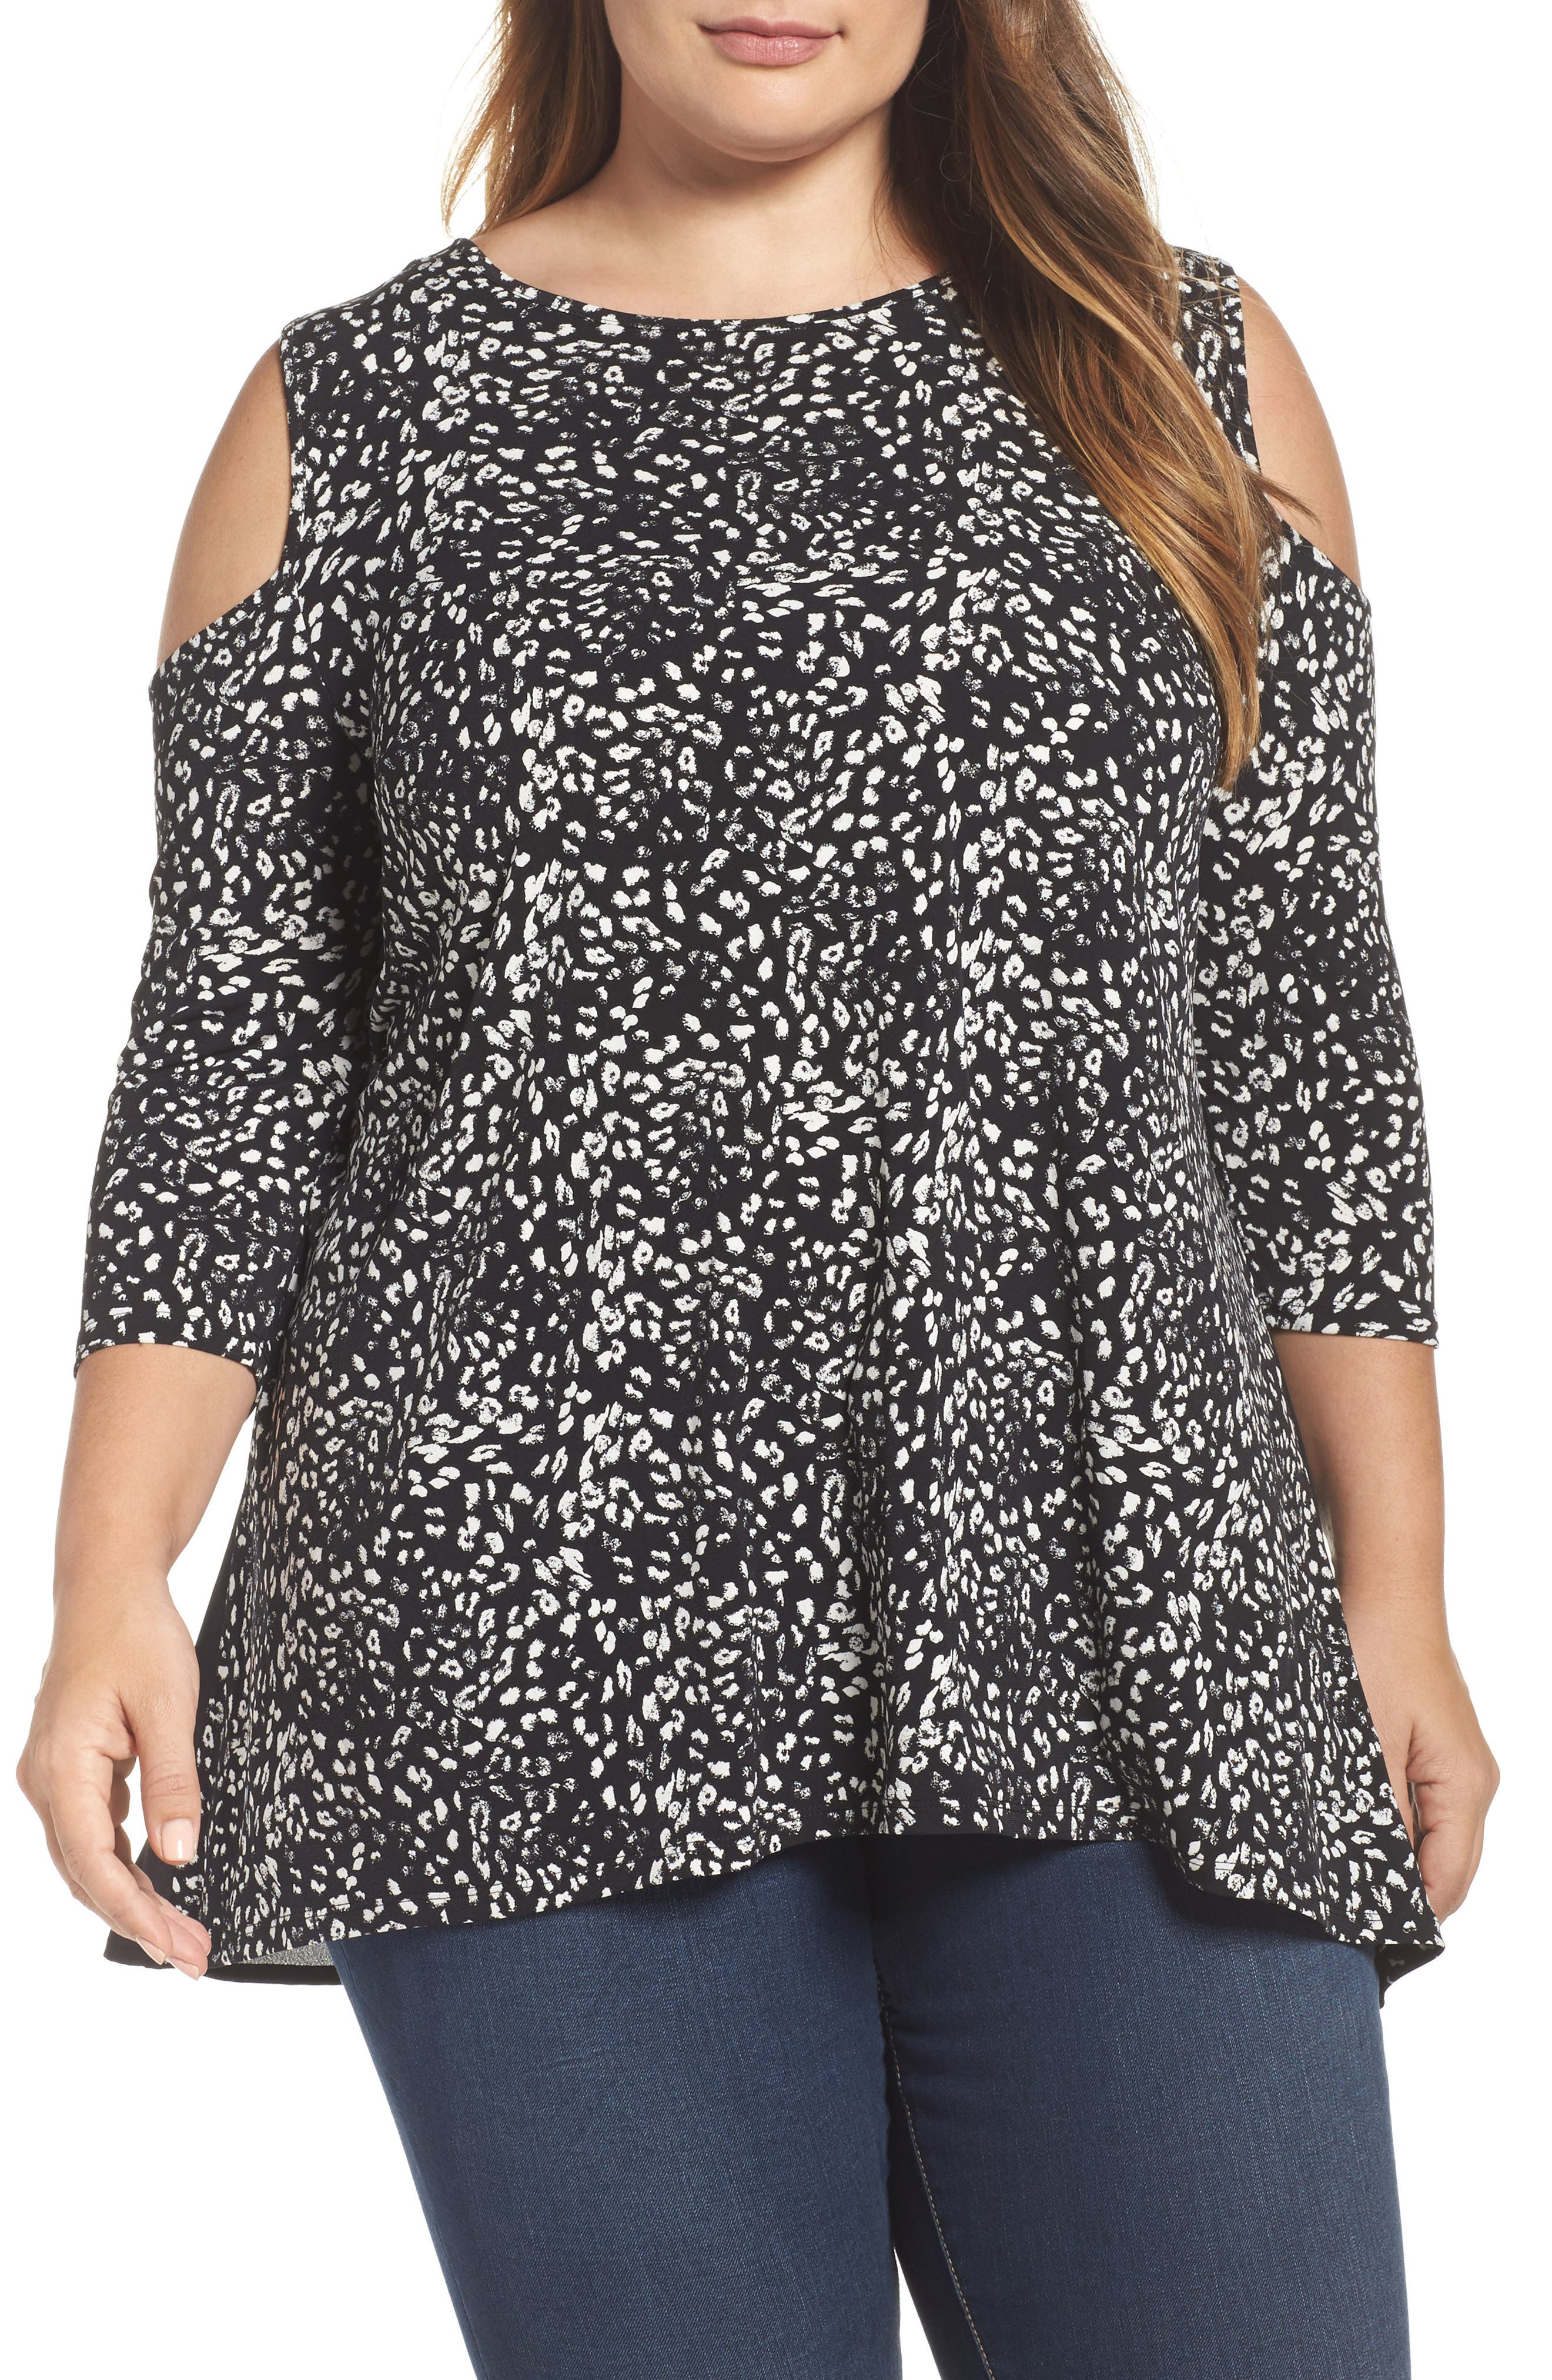 Animal Whispers Cold Shoulder Top,                         Main,                         color, 010